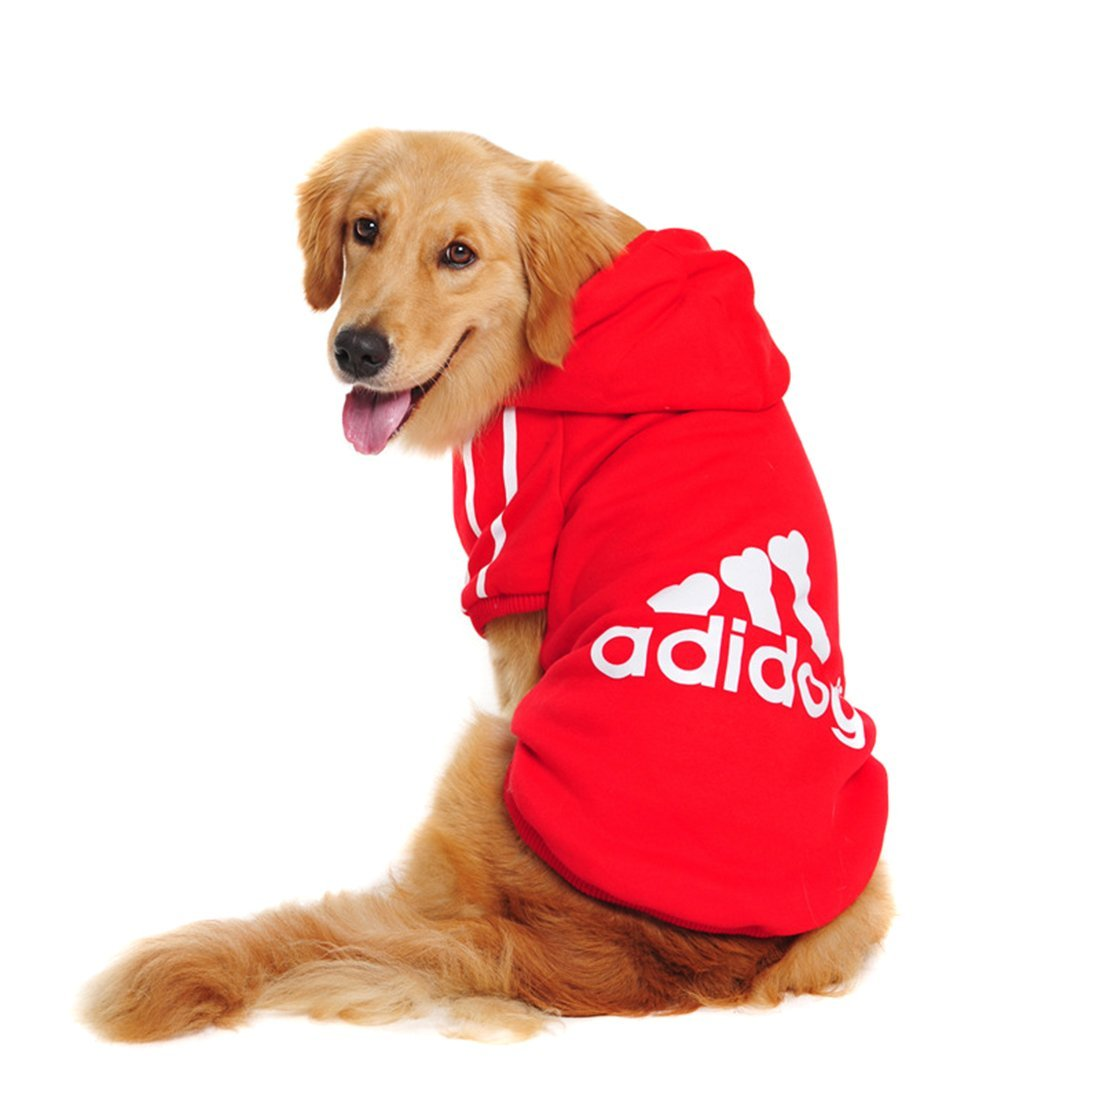 Big Dog Clothes Warm Winter Coat Jacket Clothing for Dogs Large Size Golden Retriever Labrador 3XL-9XL Adidog Hoodie